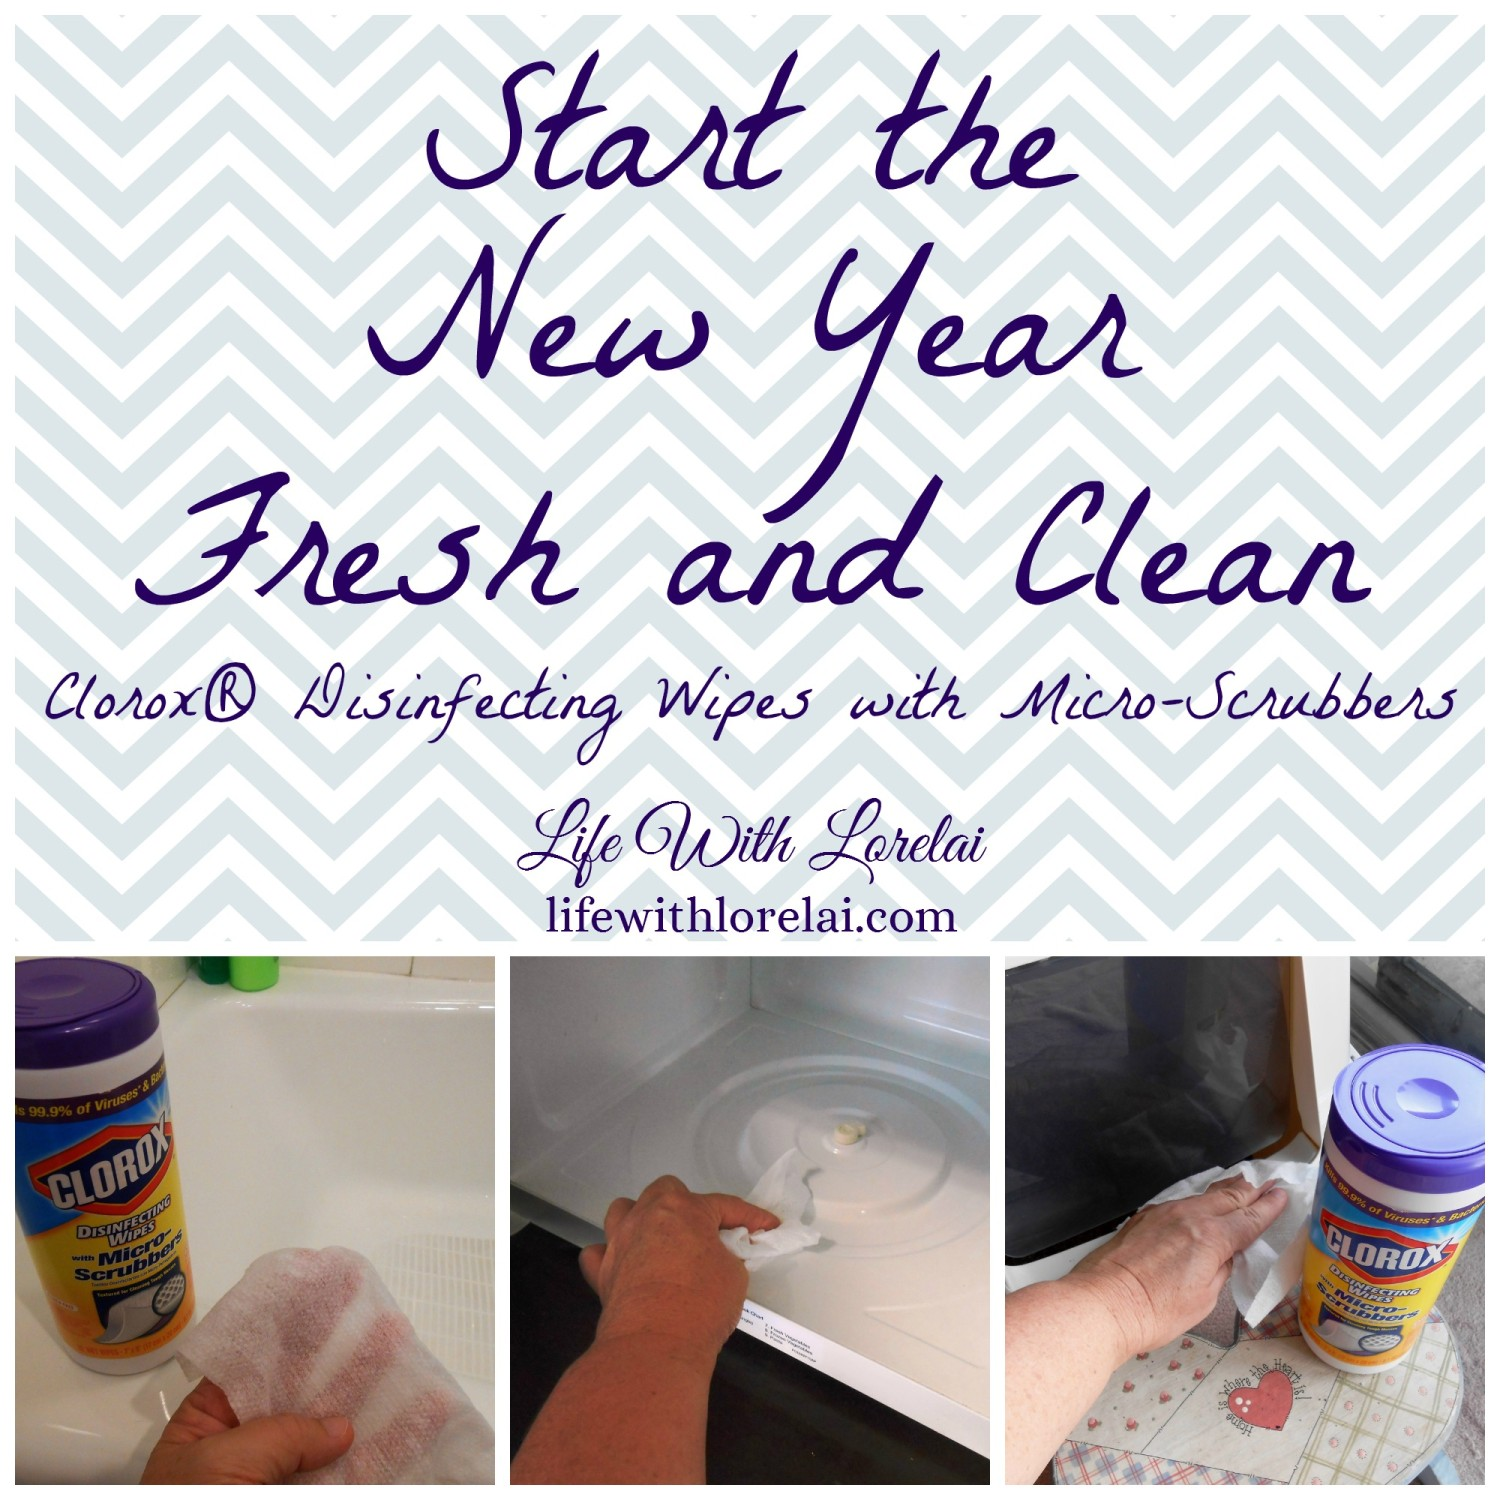 Start-the-New-Year-Fresh-and-Clean-Clorox®-Disinfecting-Wipes-with-Micro-Scrubbers